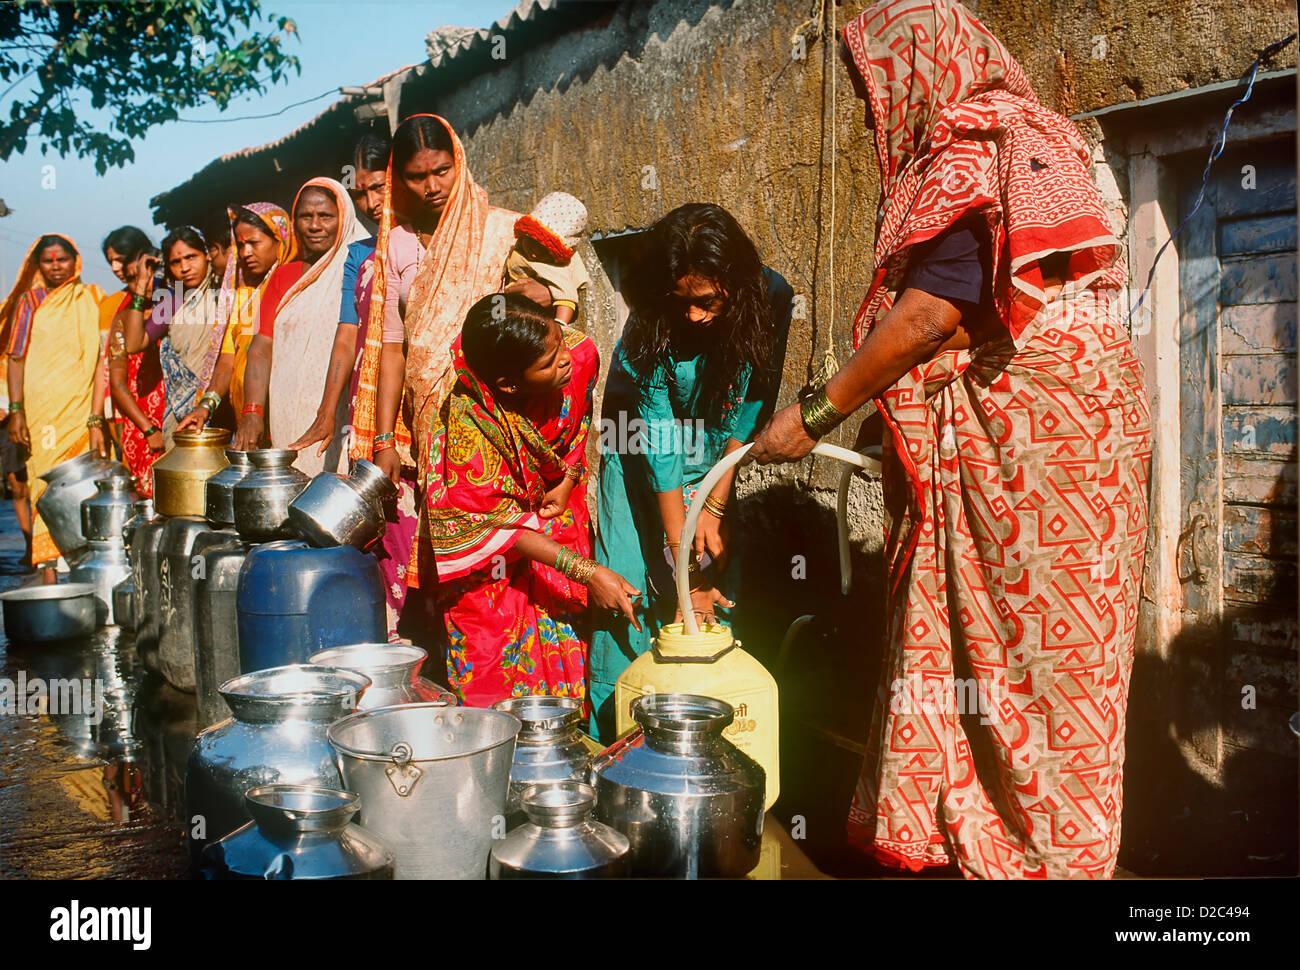 Rwomen Queuing Up In Slum Their Vessels Collect Their Daily Requirement Water Community Tap Mumbai (Bombay) India - Stock Image